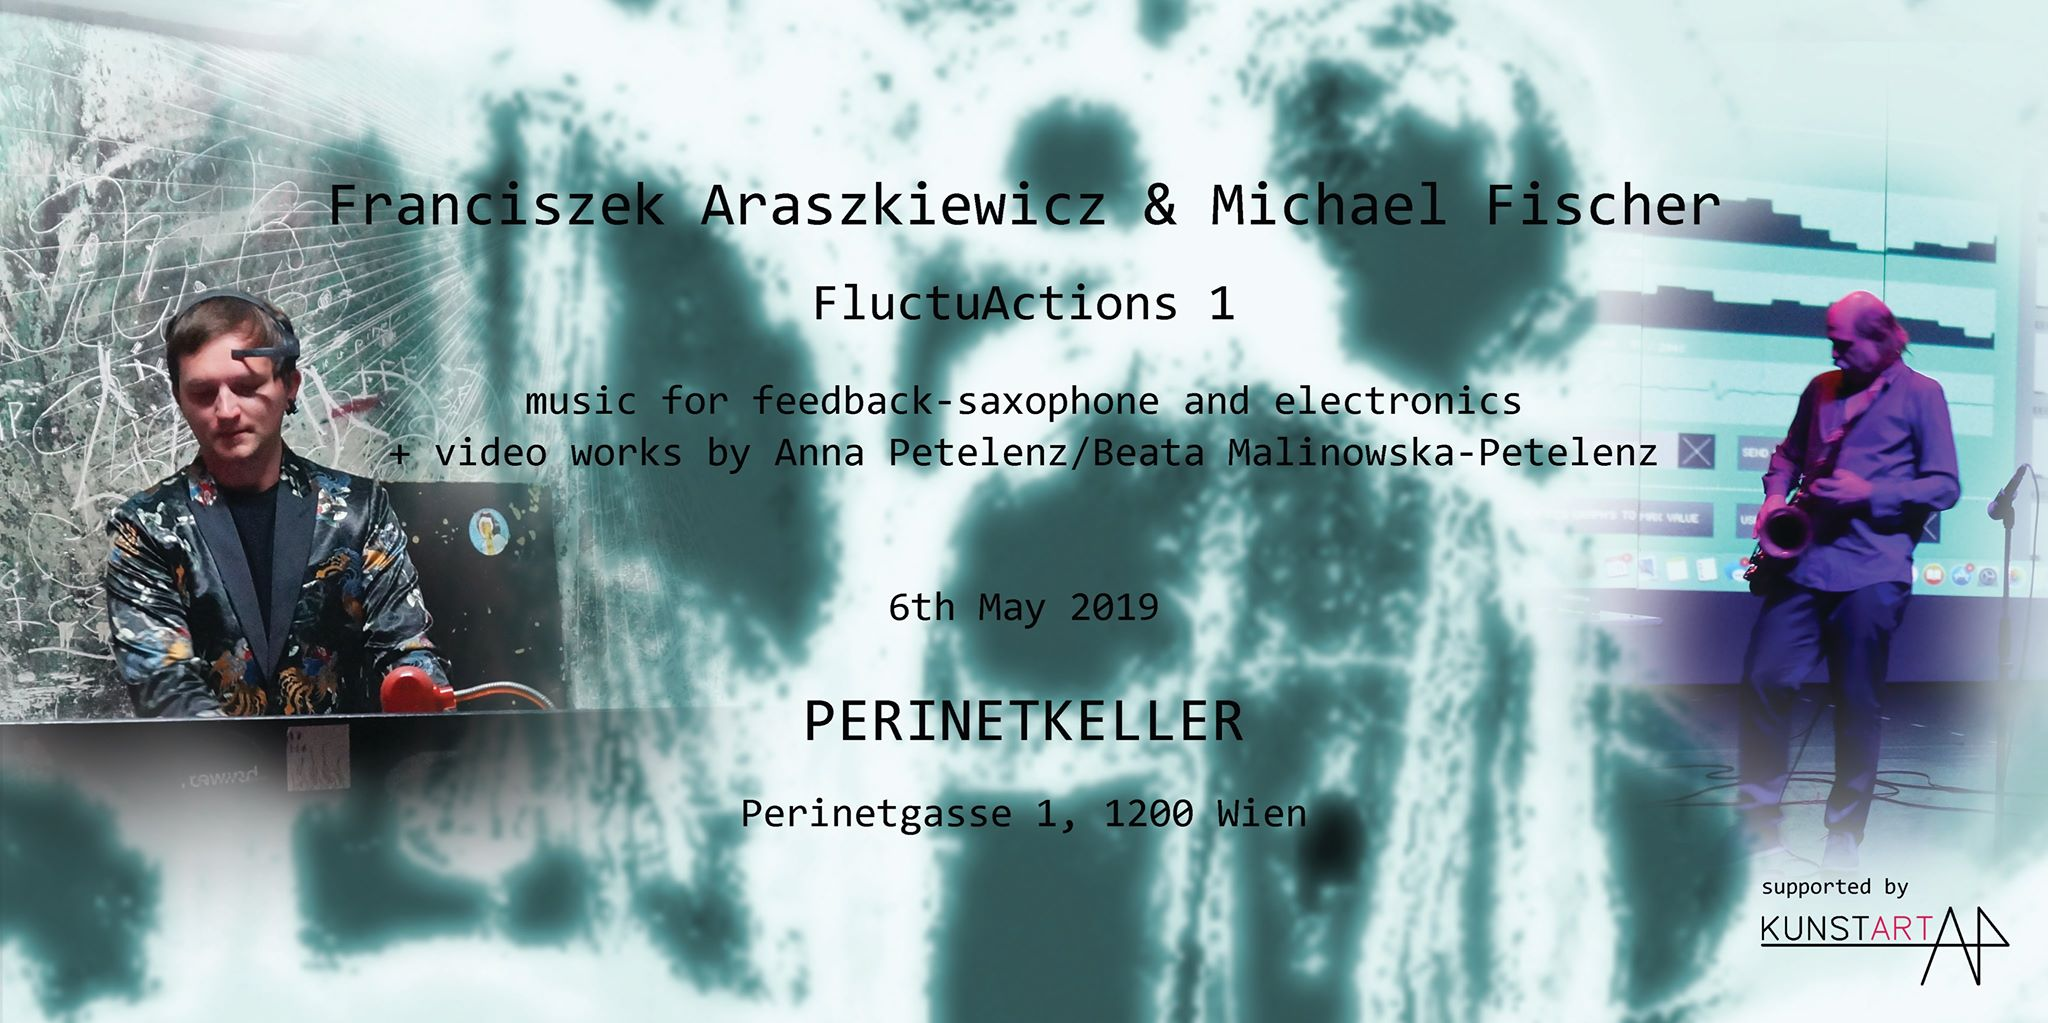 Fluctuations Perinetkeller